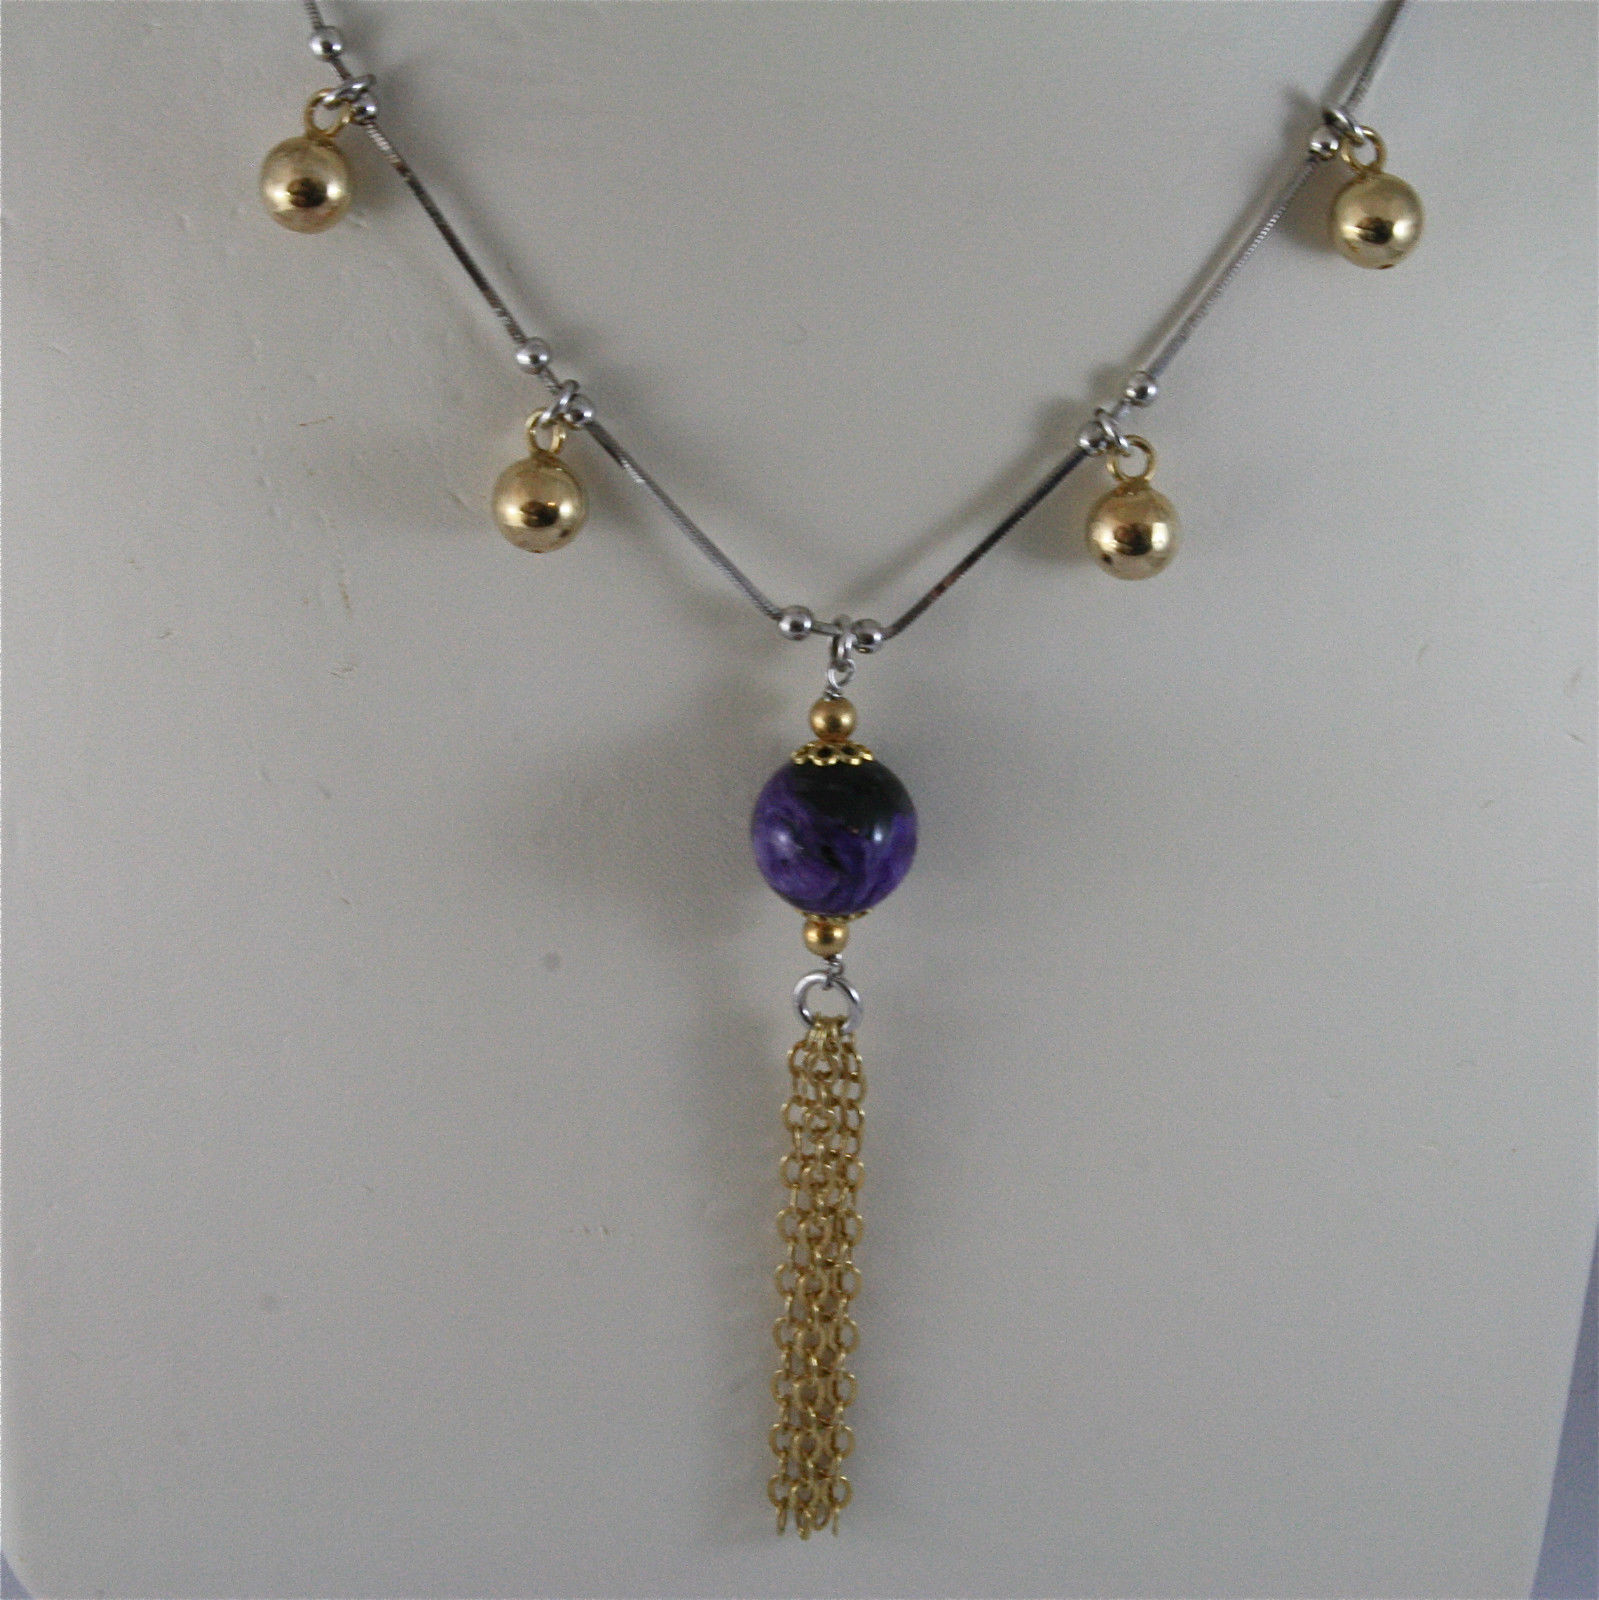 .925 SILVER RHODIUM NECKLACE 17,72 In, PURPLE GLAZE BALL, ROSE PLT BALLS CHARMS